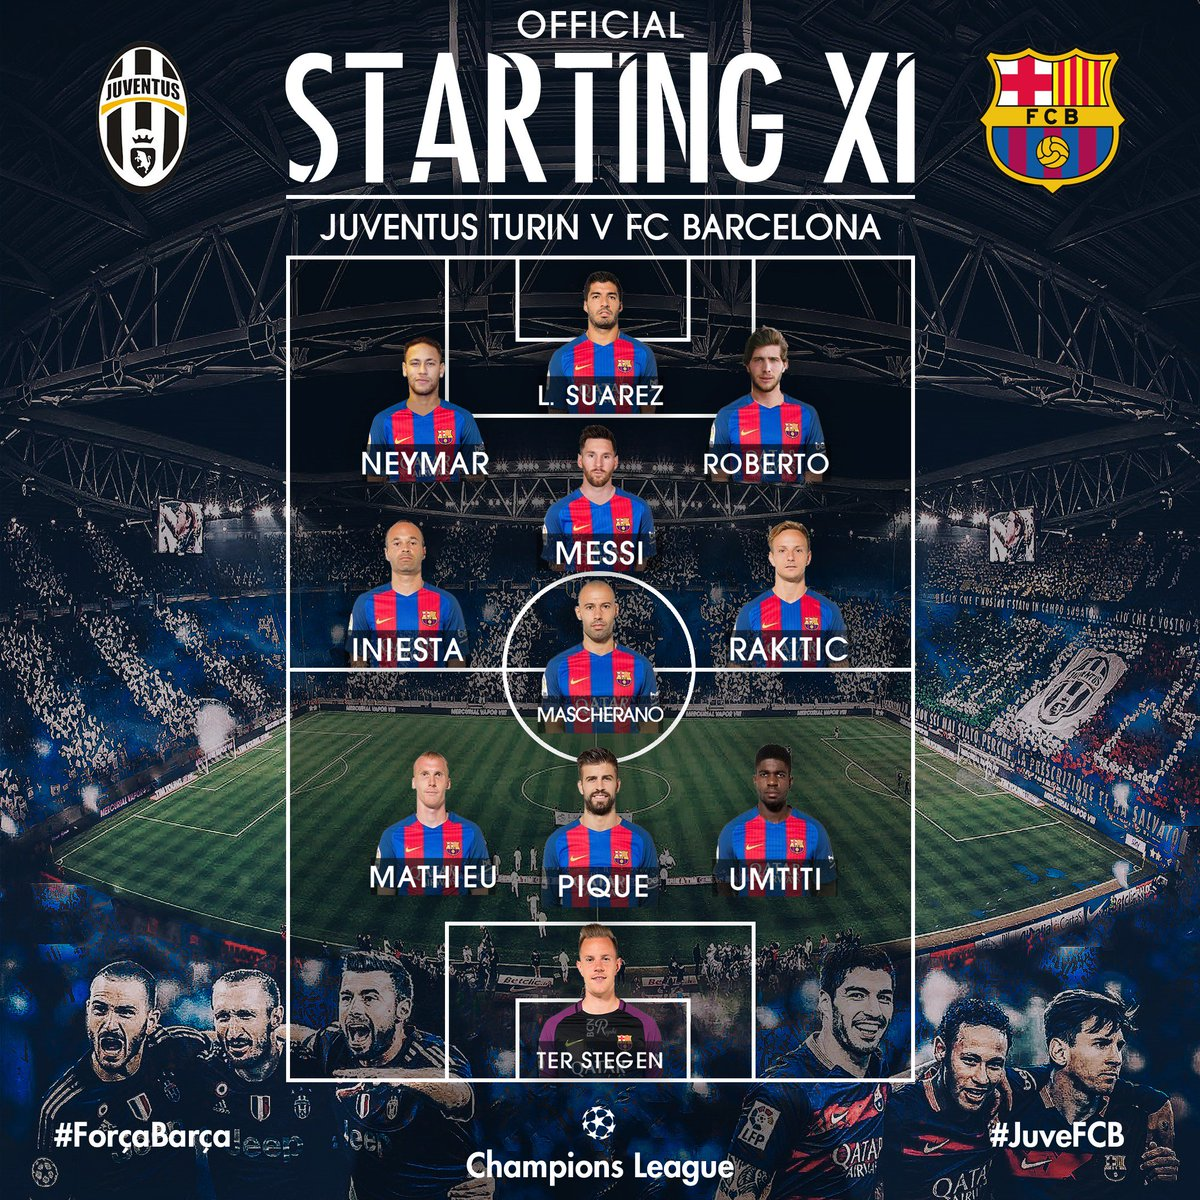 raphi on twitter official lineup juventus turin vs fc barcelona juvefcb fcblive forcabarca ucl raphi on twitter official lineup